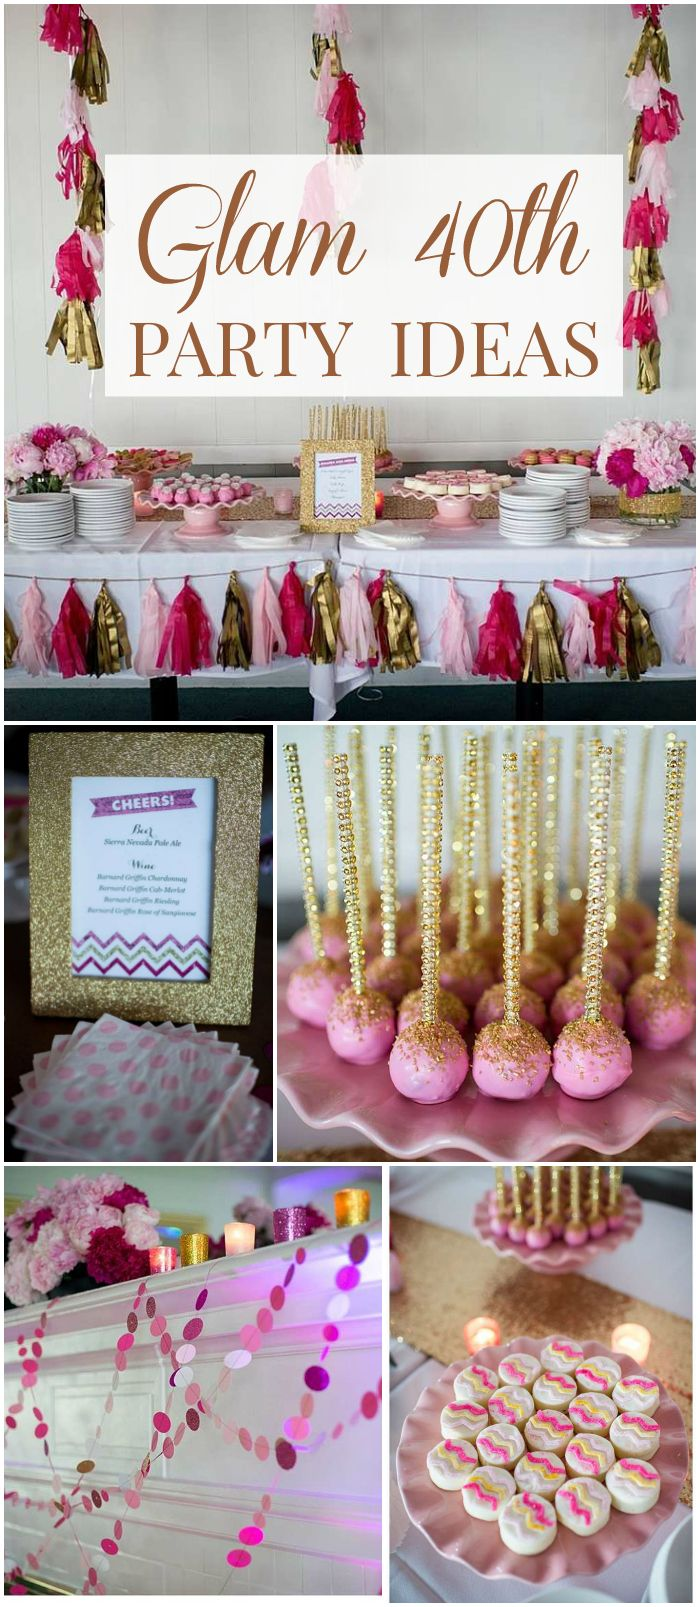 This Pink And Gold 40th Birthday Soiree Is Full Of Glitz Glam See More Party Ideas At CatchMyParty